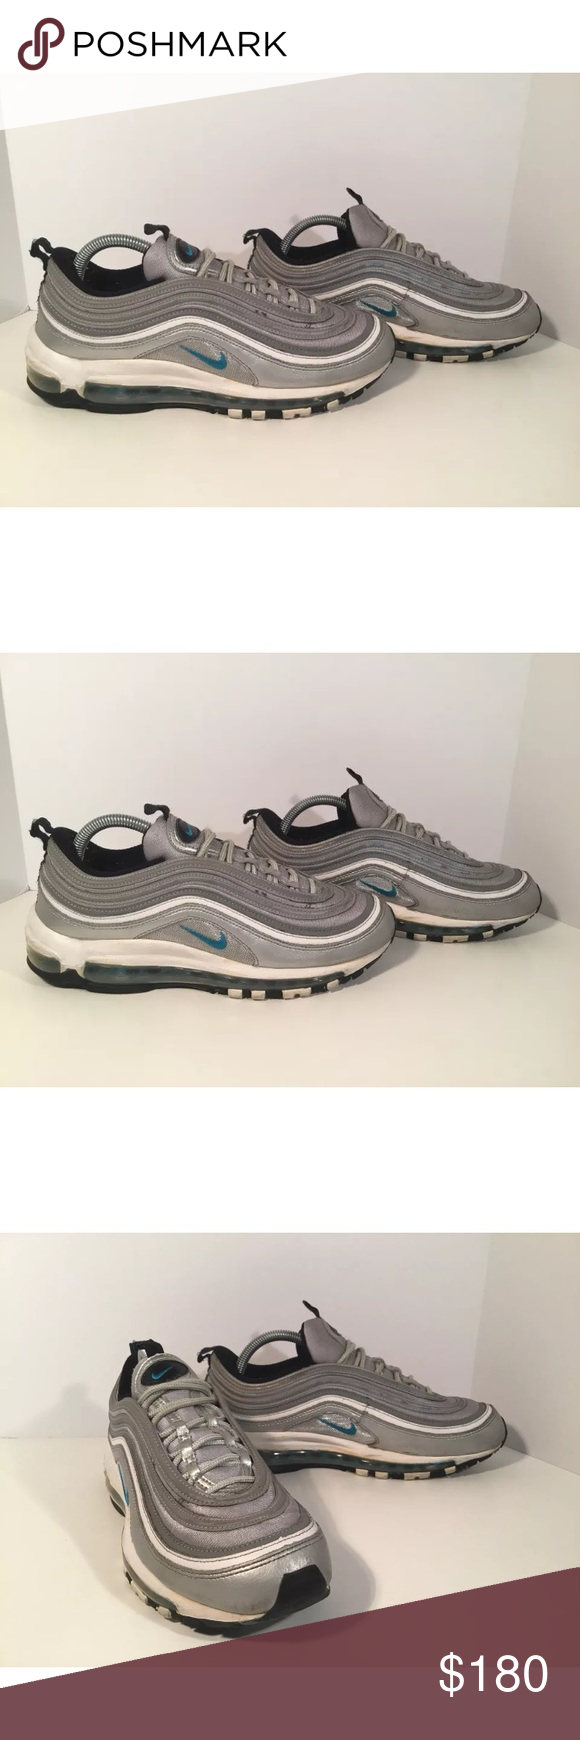 best value 6d7ae 4a374 Nike Air Max 97 Item details  Nike brand -in used condition -Men s ...